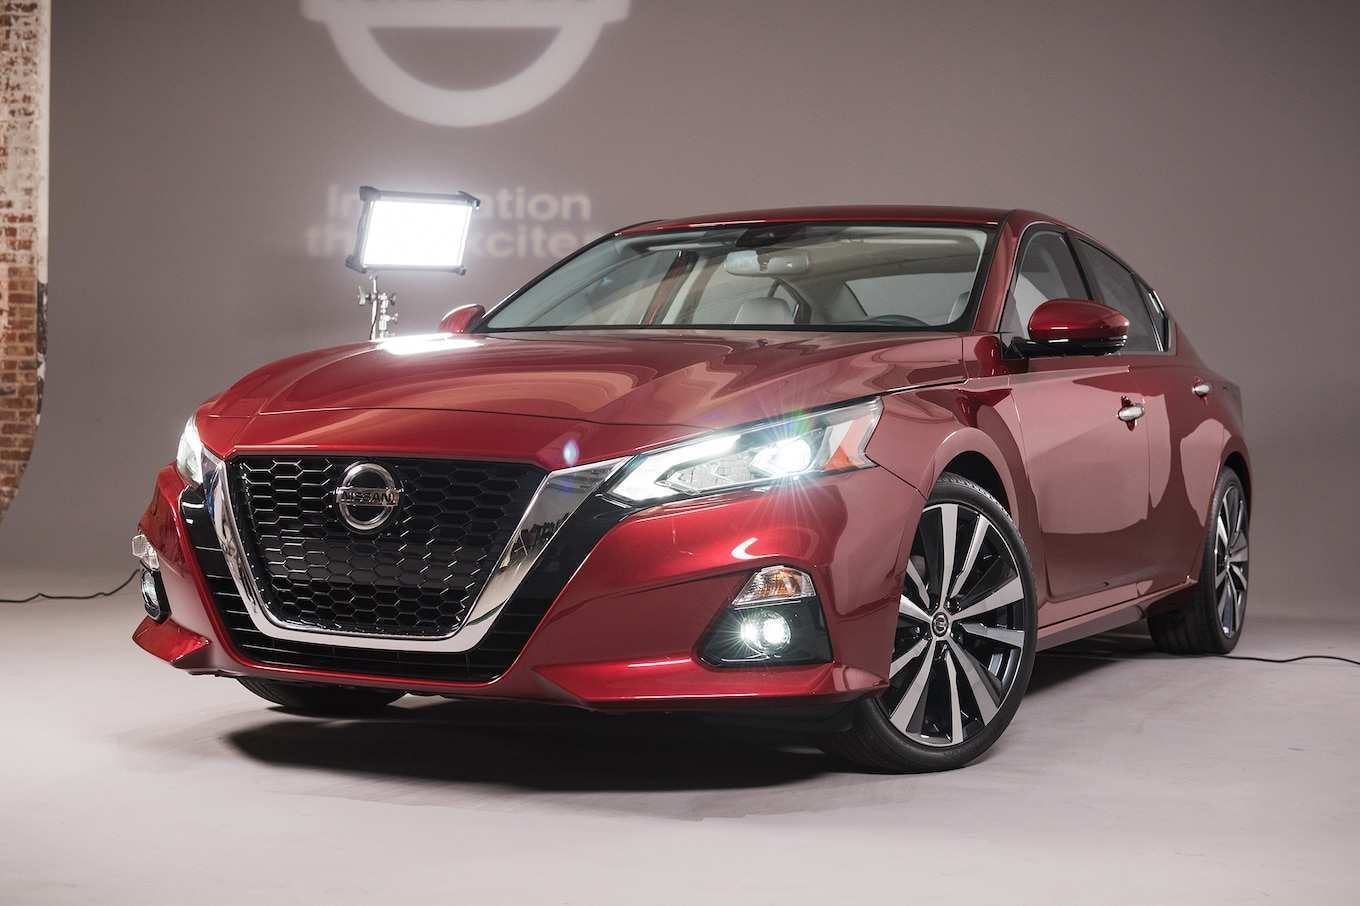 60 New 2019 Nissan Altima Coupe Release Date And Concept